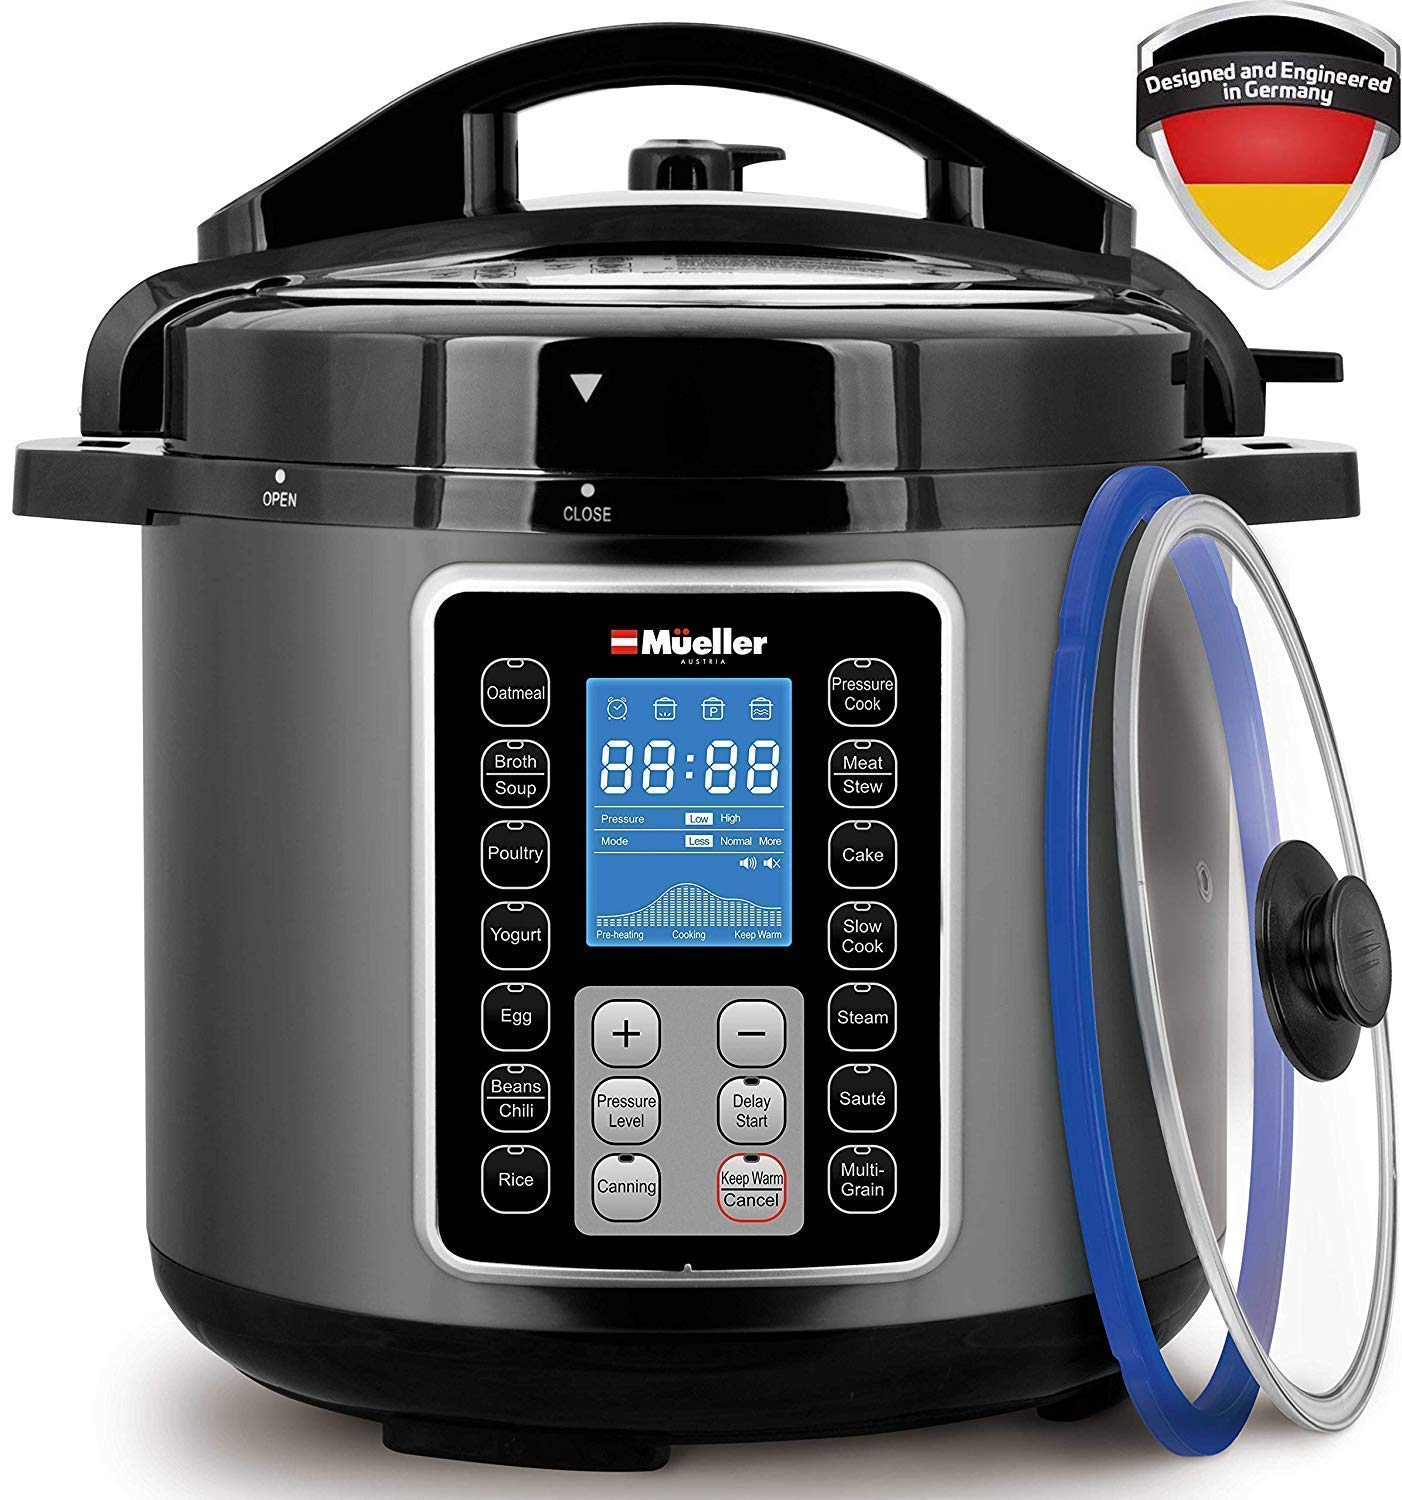 Mueller UltraPot 10-in-1 Pro Series 6Q Pressure Cooker with German ThermaV Tech, Cook 2 Dishes at Once, Bonus Tempered Glass Lid incl, Saute, Steamer, Slow, Rice, Yogurt, Maker, Sterilizer (Graphite) Mueller Austria